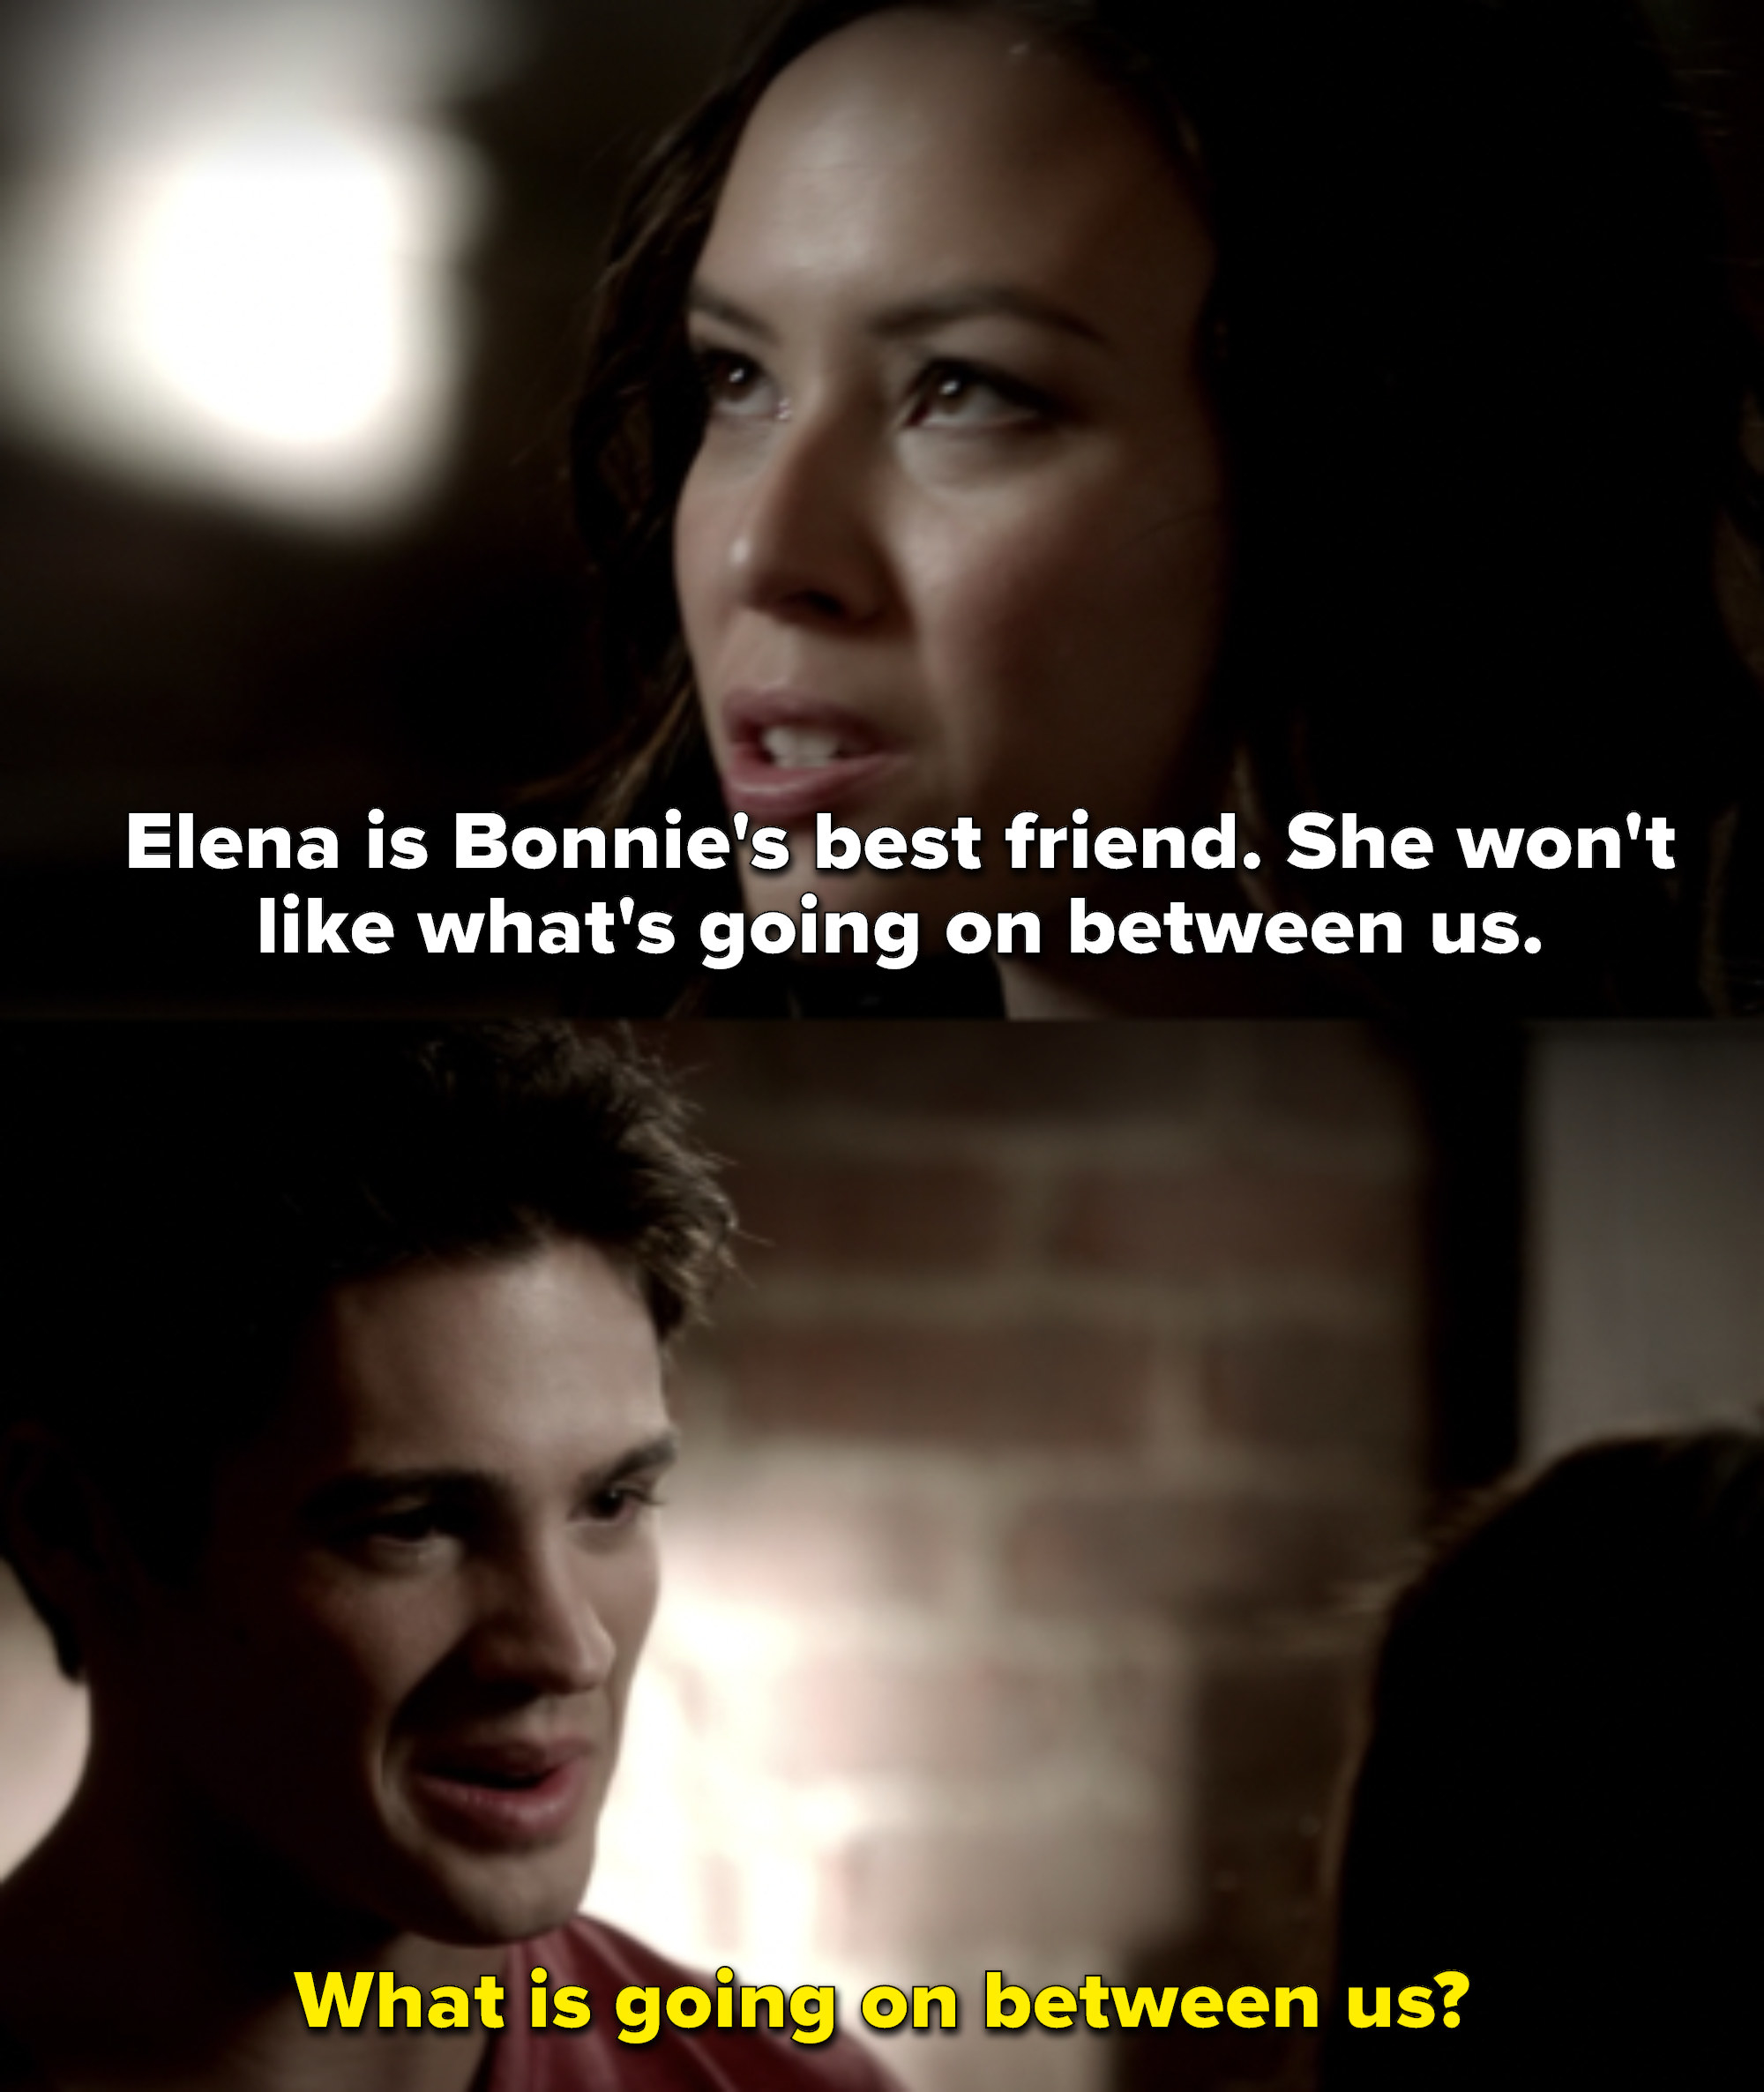 """Anna says Elena is Bonnie's best friend and won't like what's going on between them, and Jeremy responds """"What is going on between us?"""""""